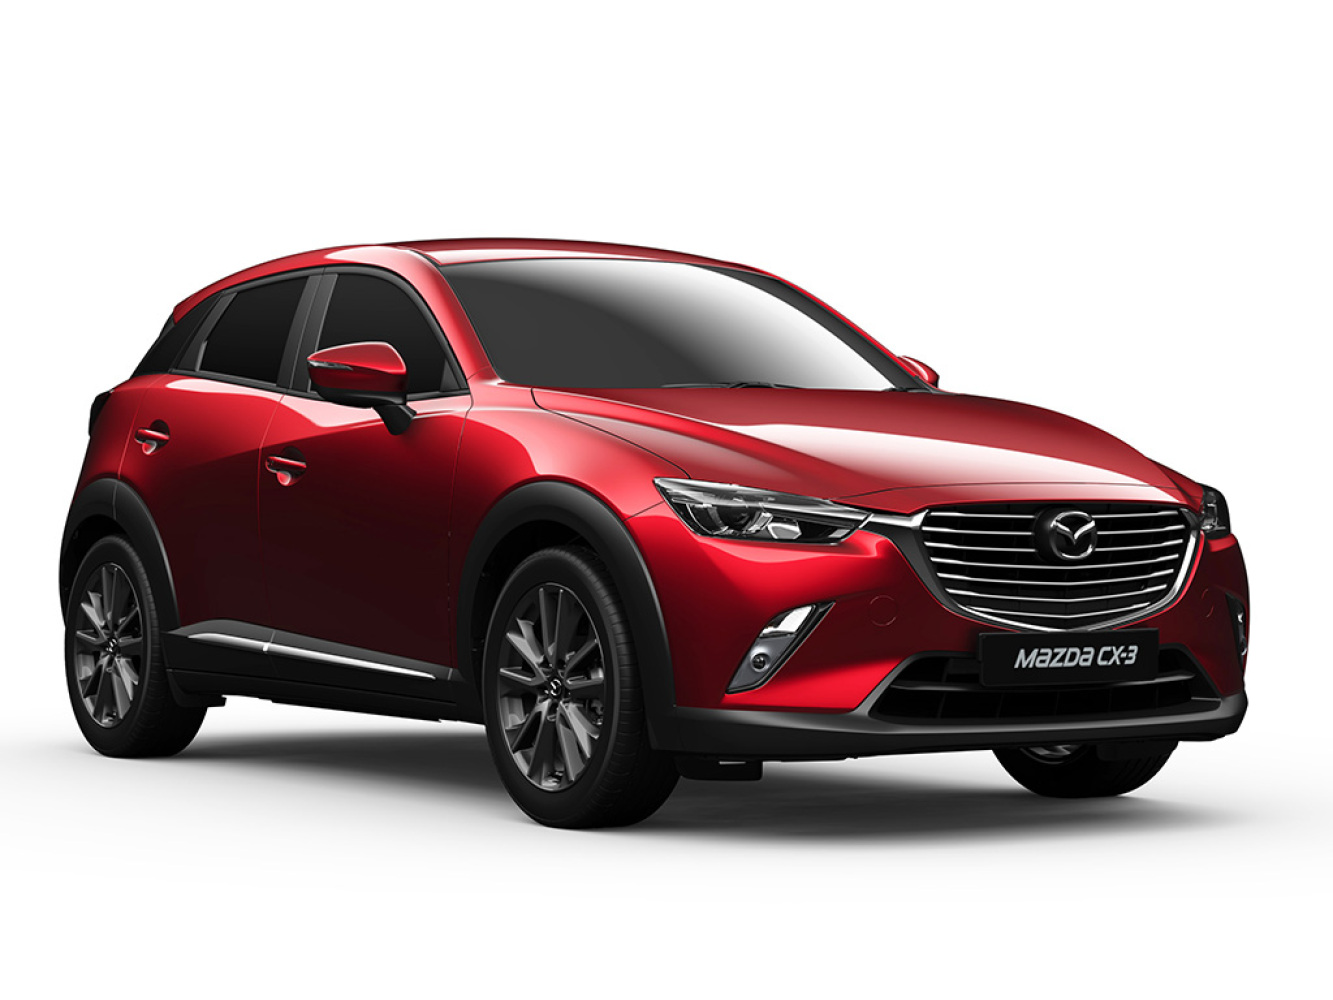 new mazda cx 3 2 0 sport nav 5dr auto petrol hatchback for sale bristol street. Black Bedroom Furniture Sets. Home Design Ideas